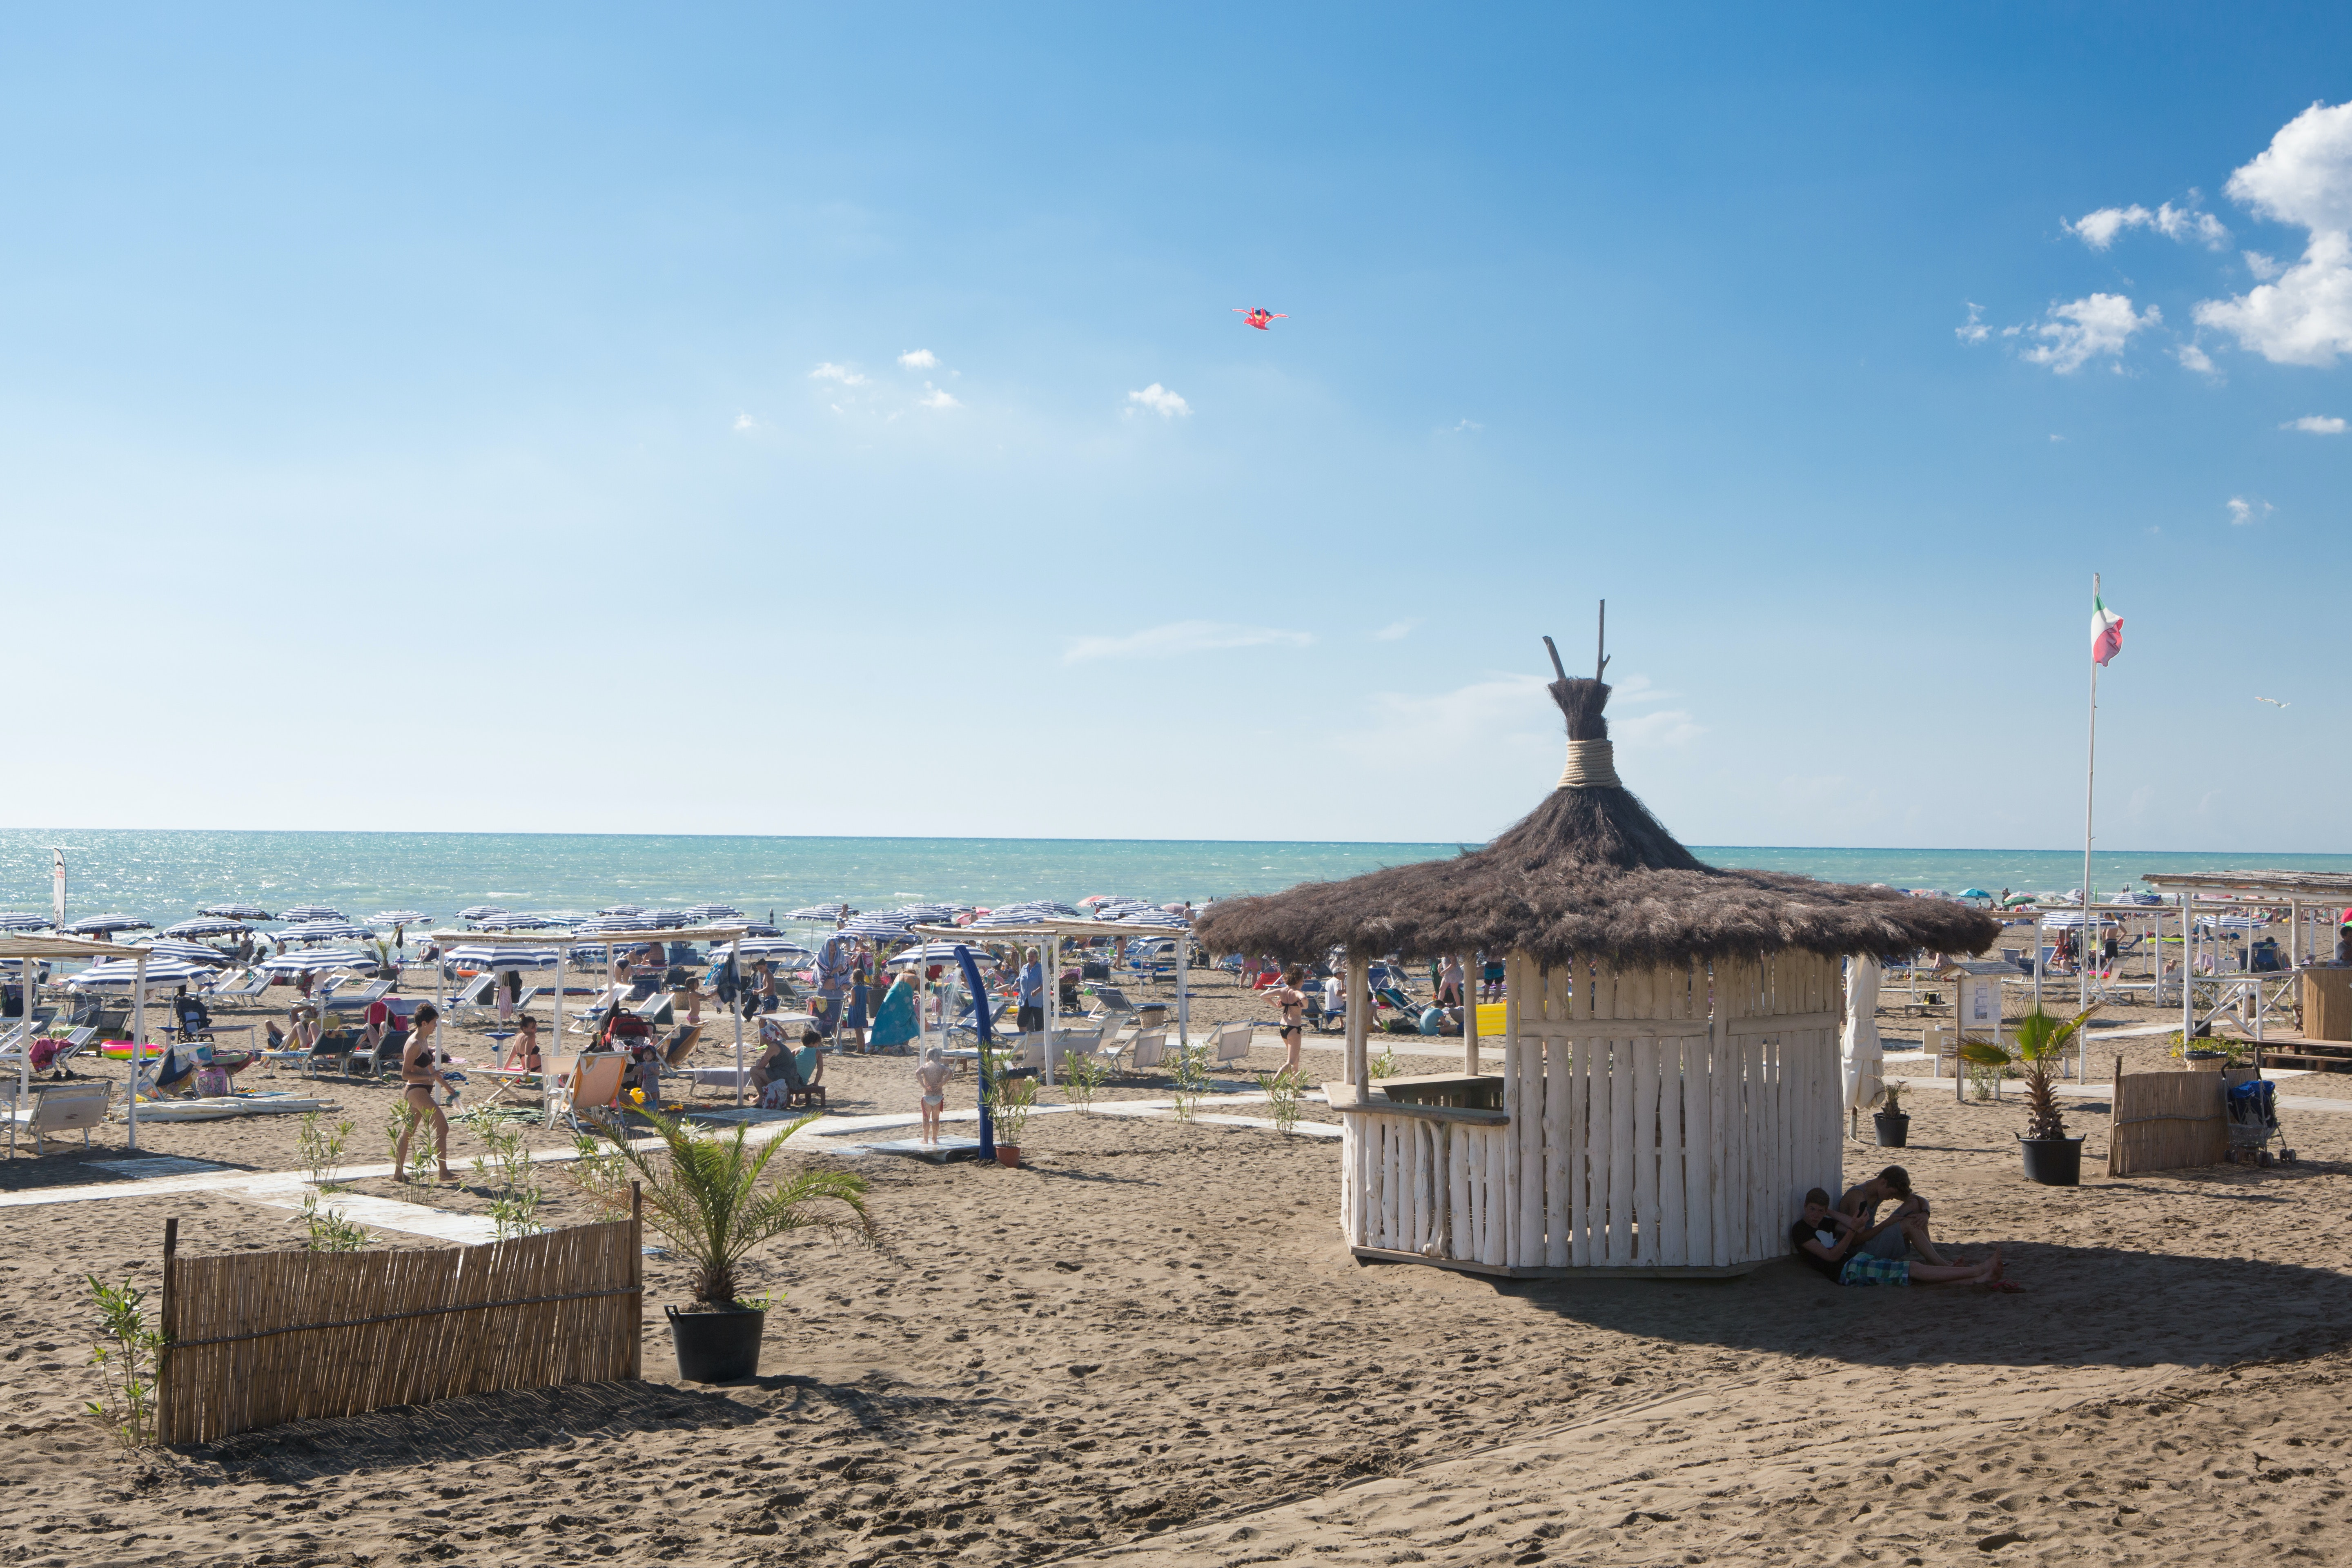 Vol strand bij camping International Etruria